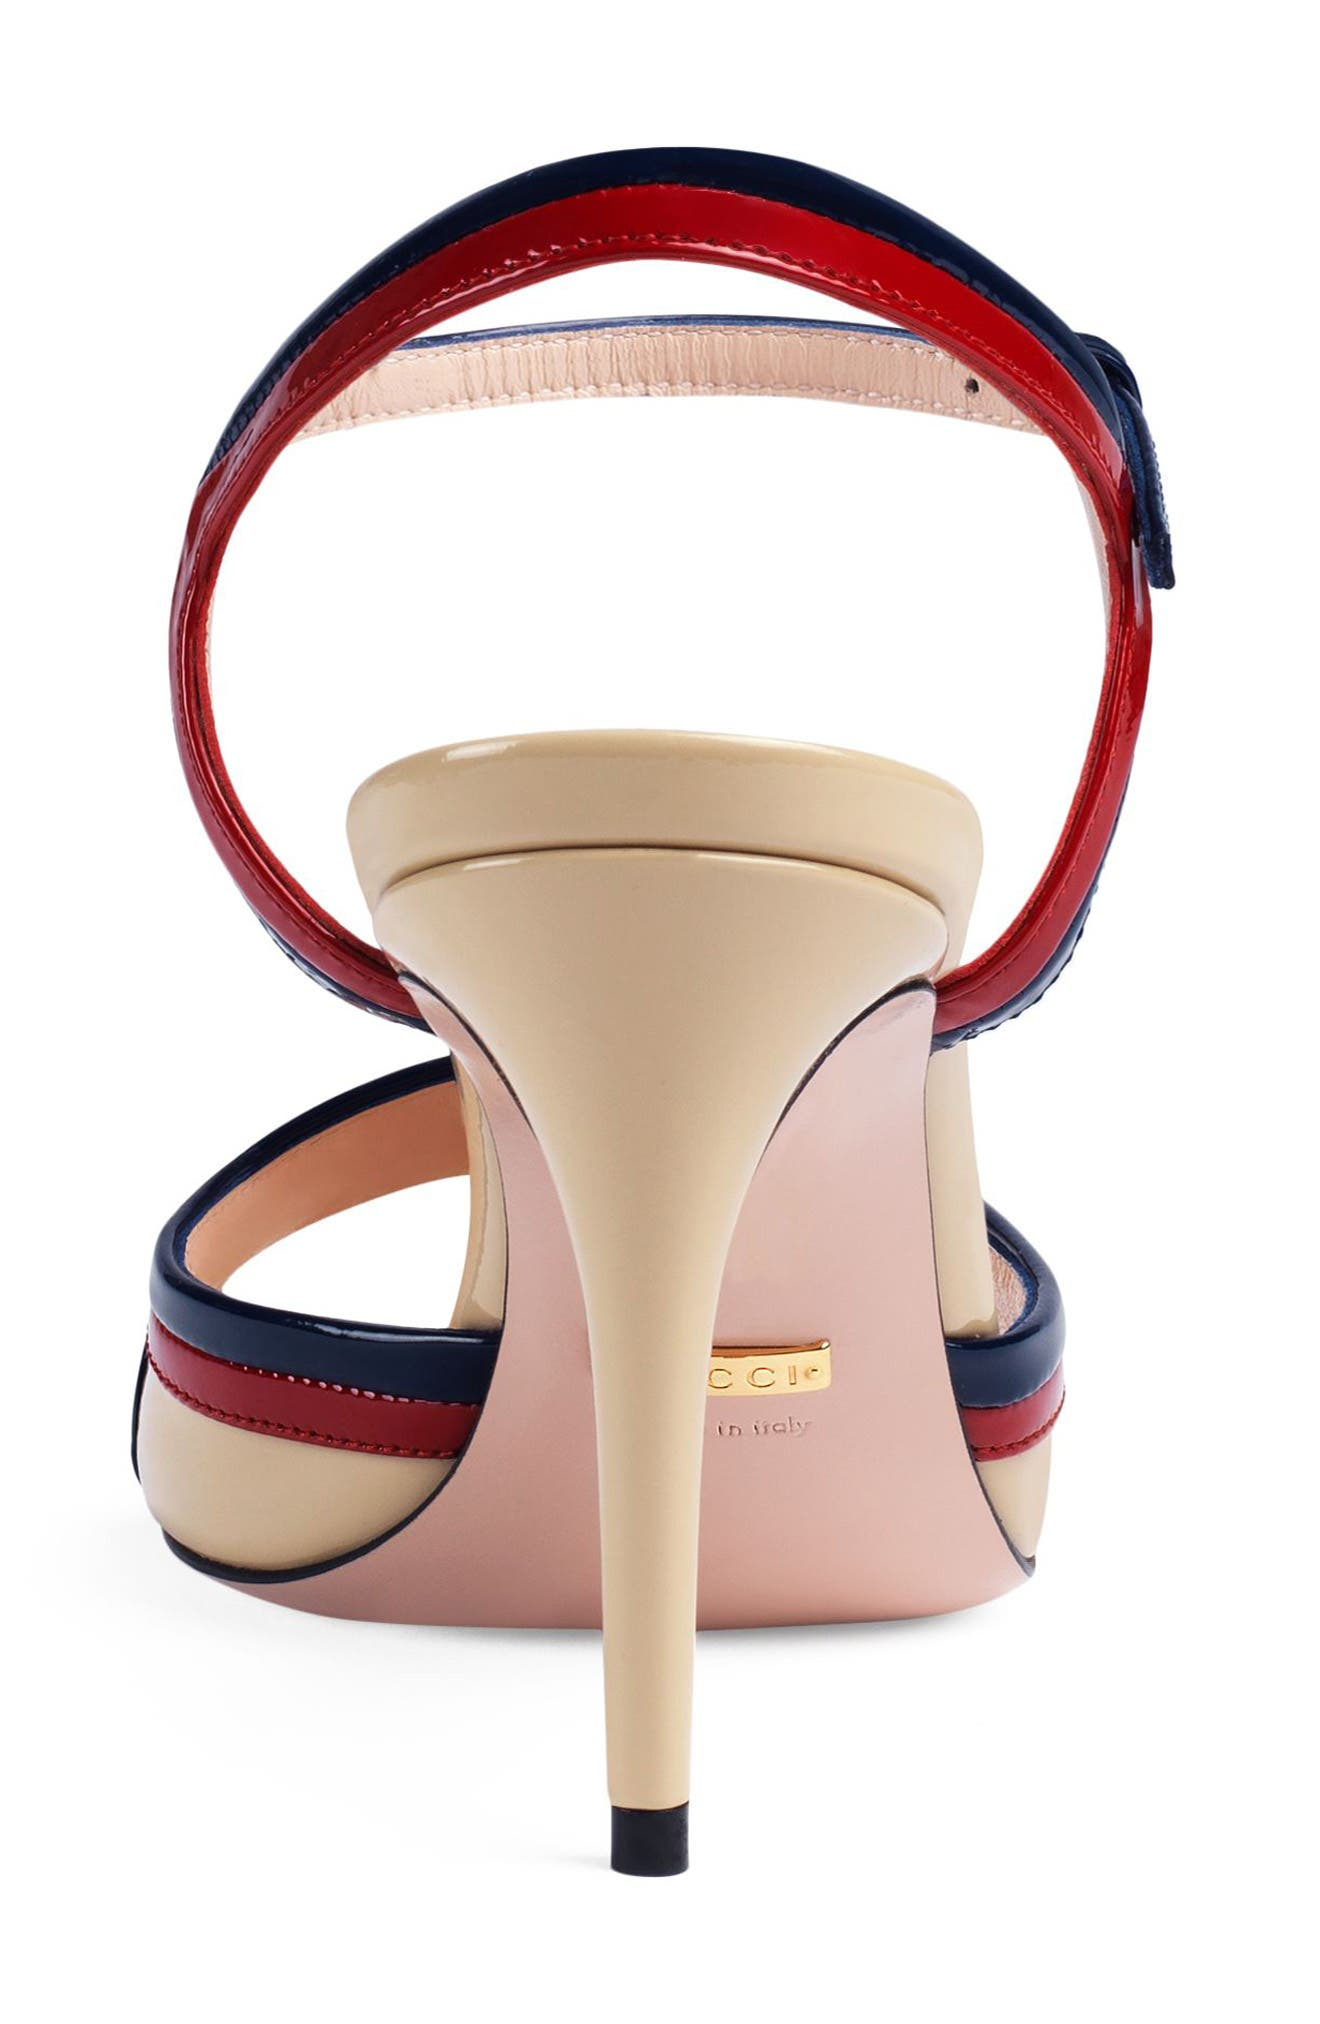 Millie Ankle Strap Sandal,                             Alternate thumbnail 2, color,                             250